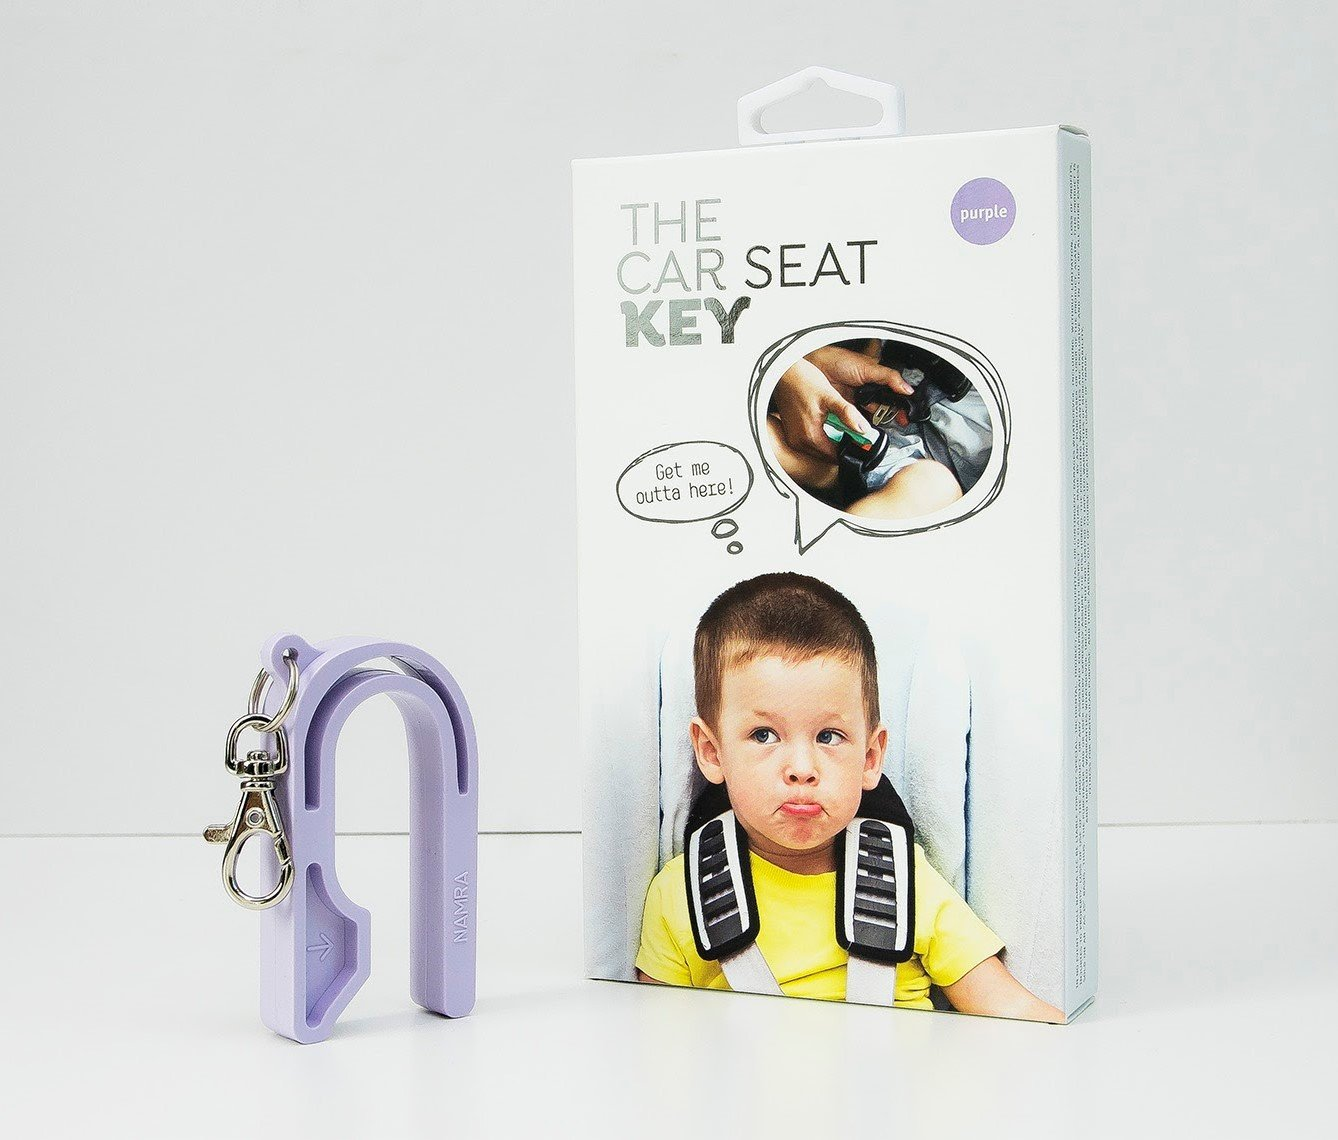 LEIWOOR 3Pcs Baby Car Seat Key Unbuckle Tool,Baby Carseat Opener,Car Seat Key Easy Way to Unbuckle Carseats Helps Kids